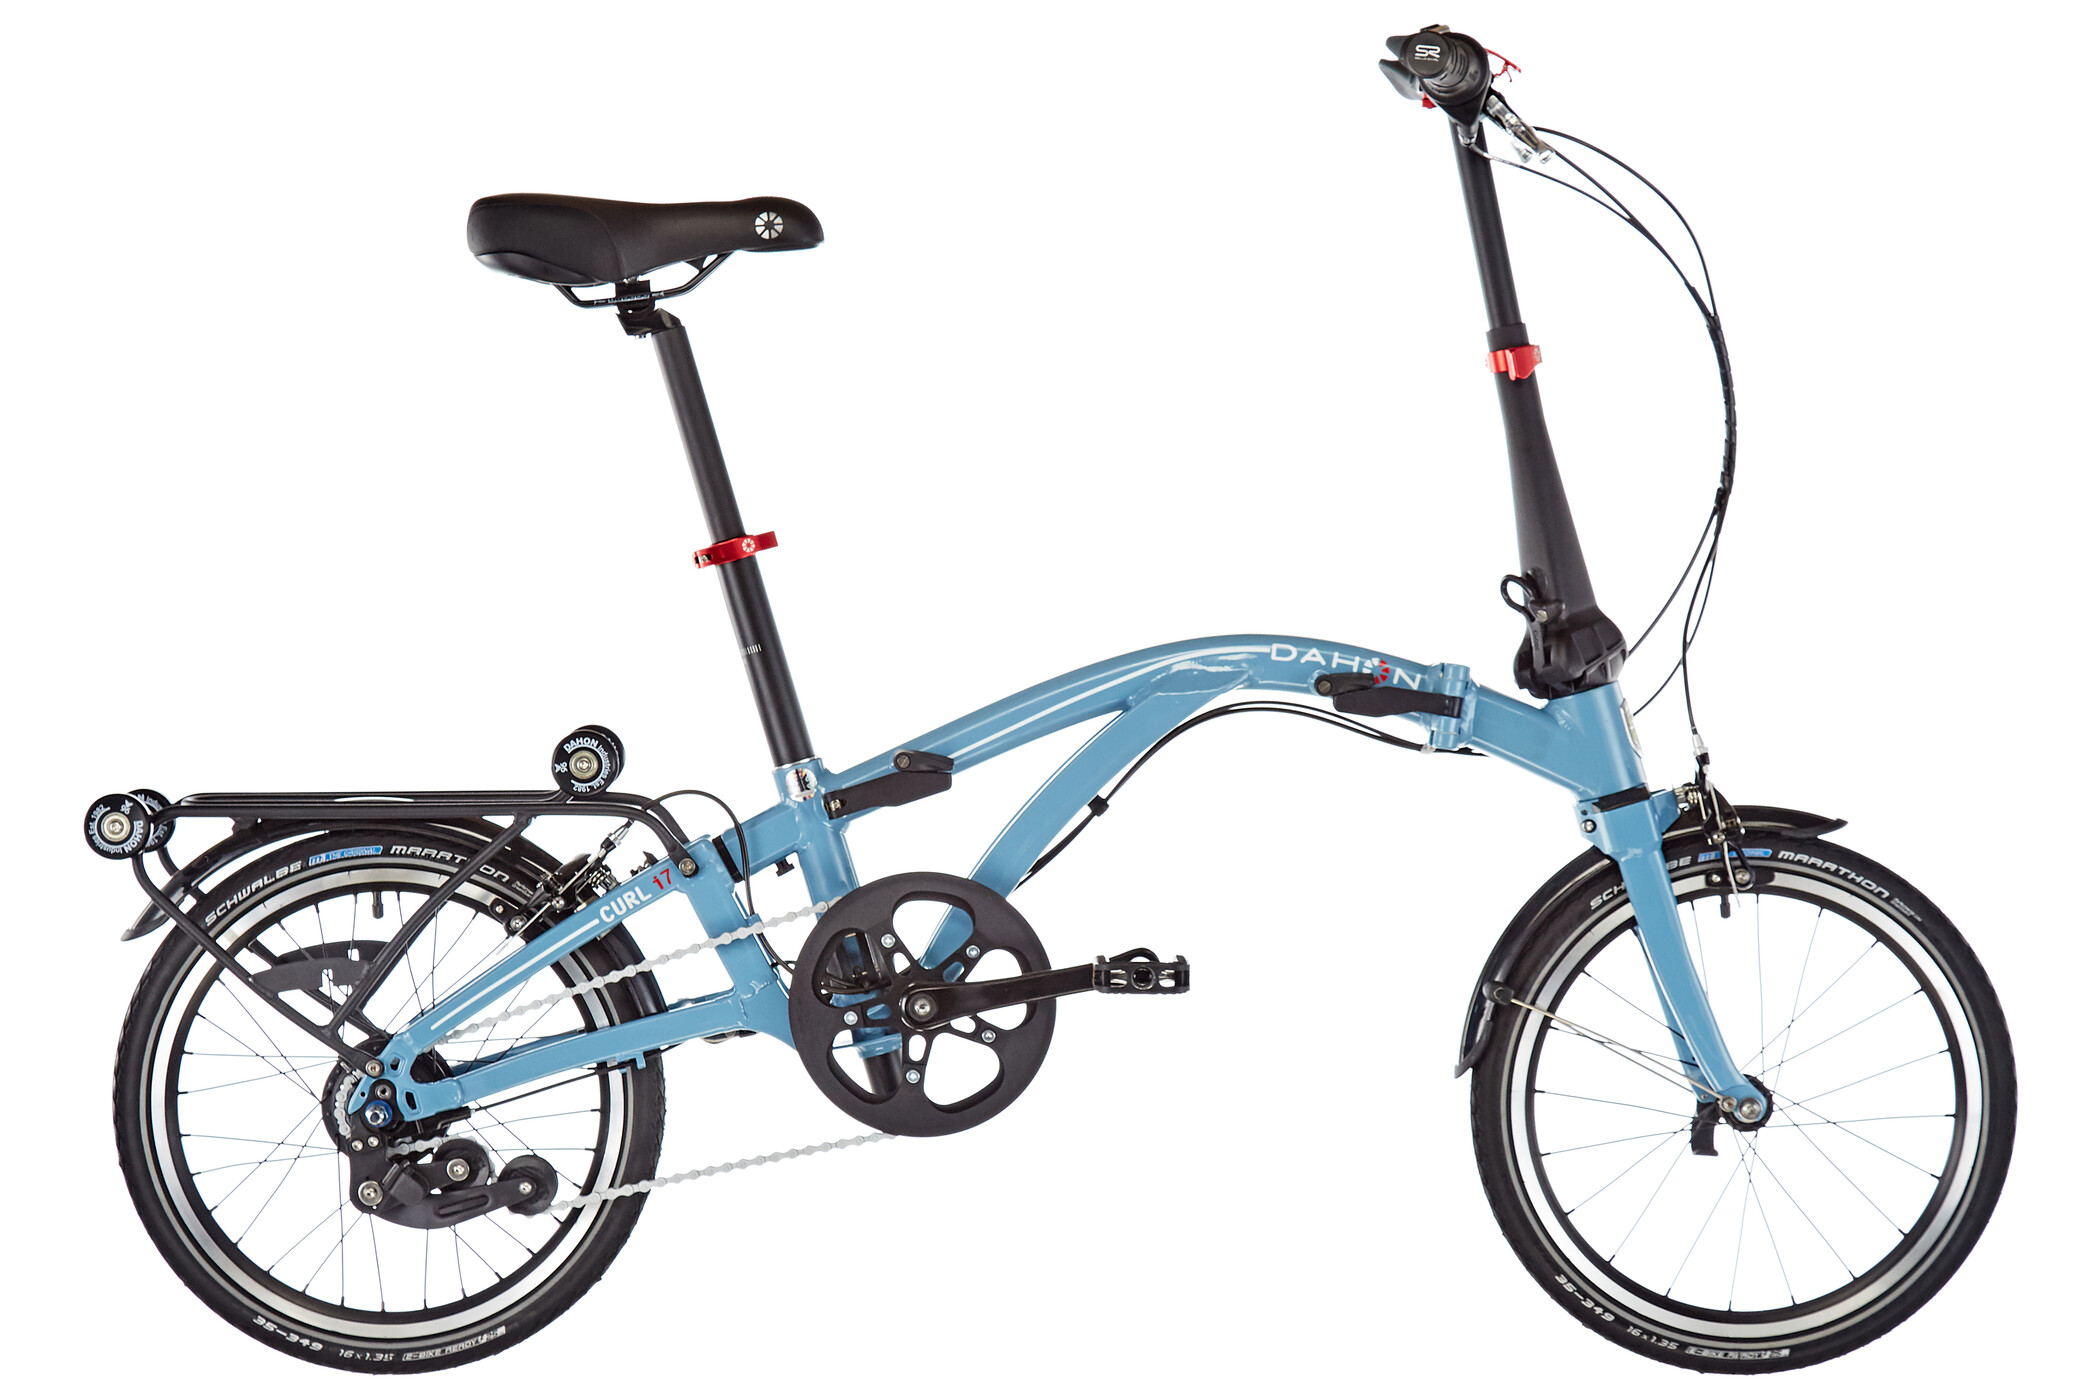 "DAHON Curl i7 16"", blue (2019) 